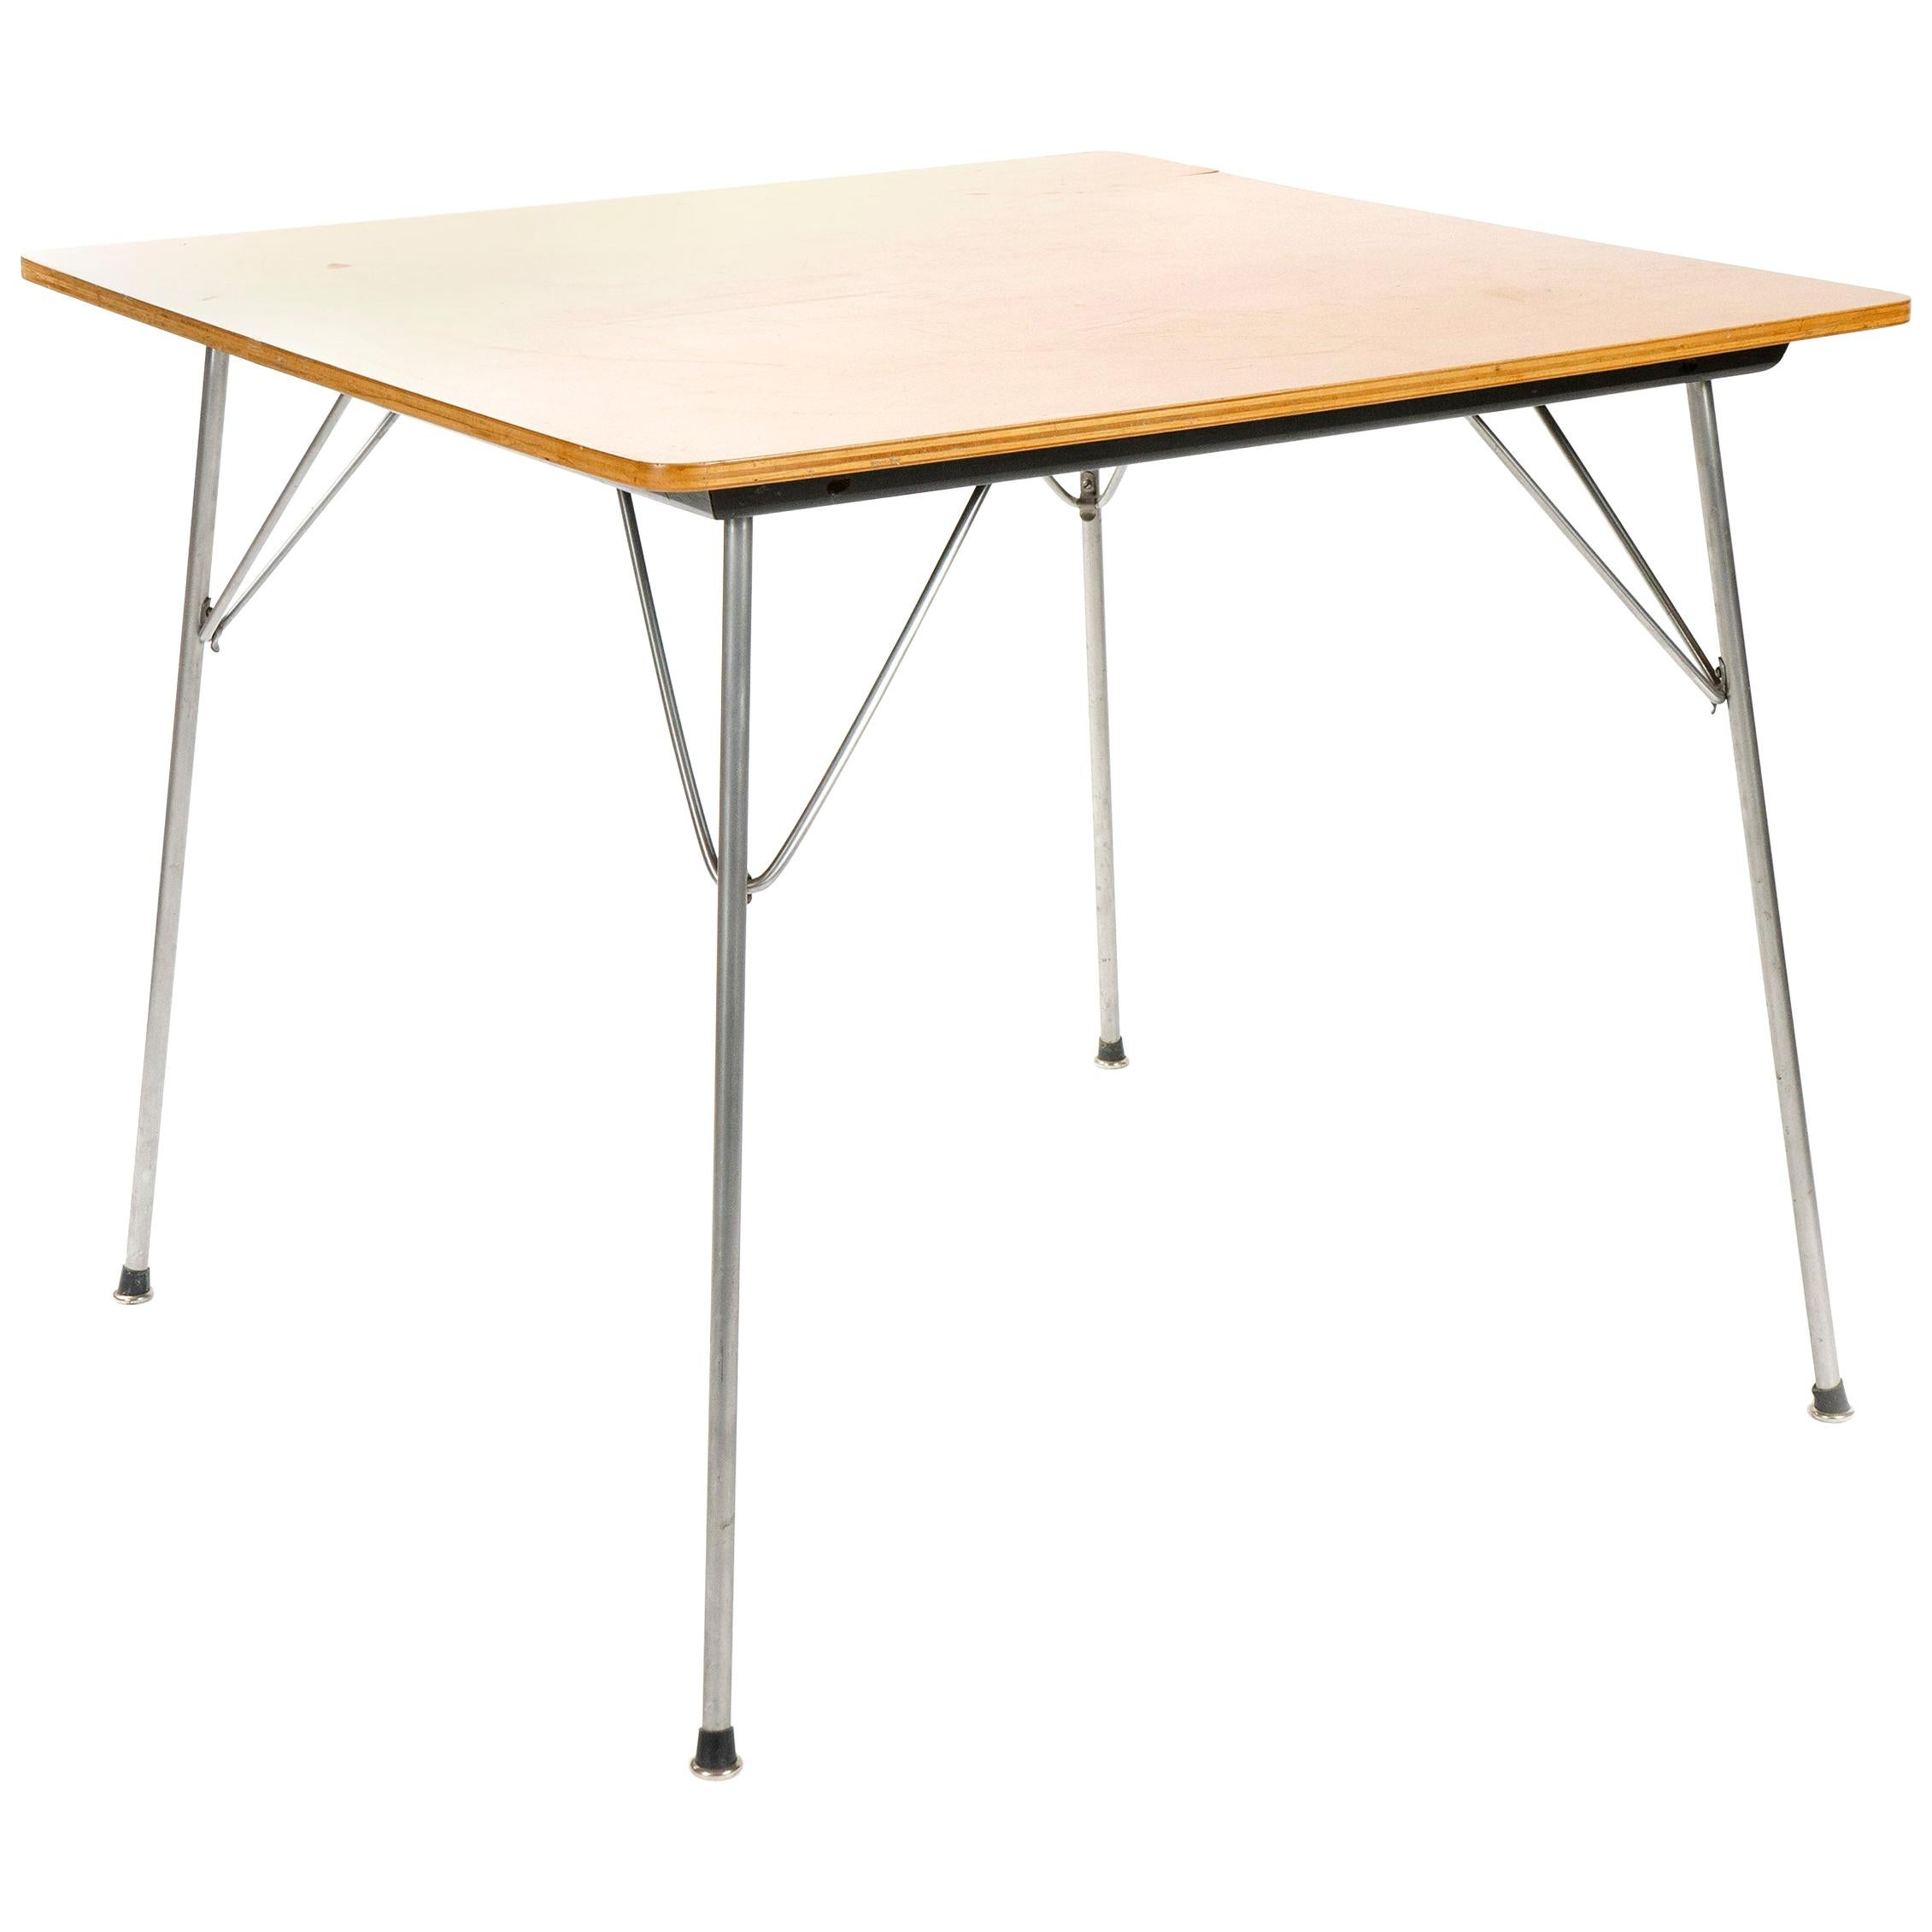 1950s Gaming Table by Charles Eames for Herman Miller